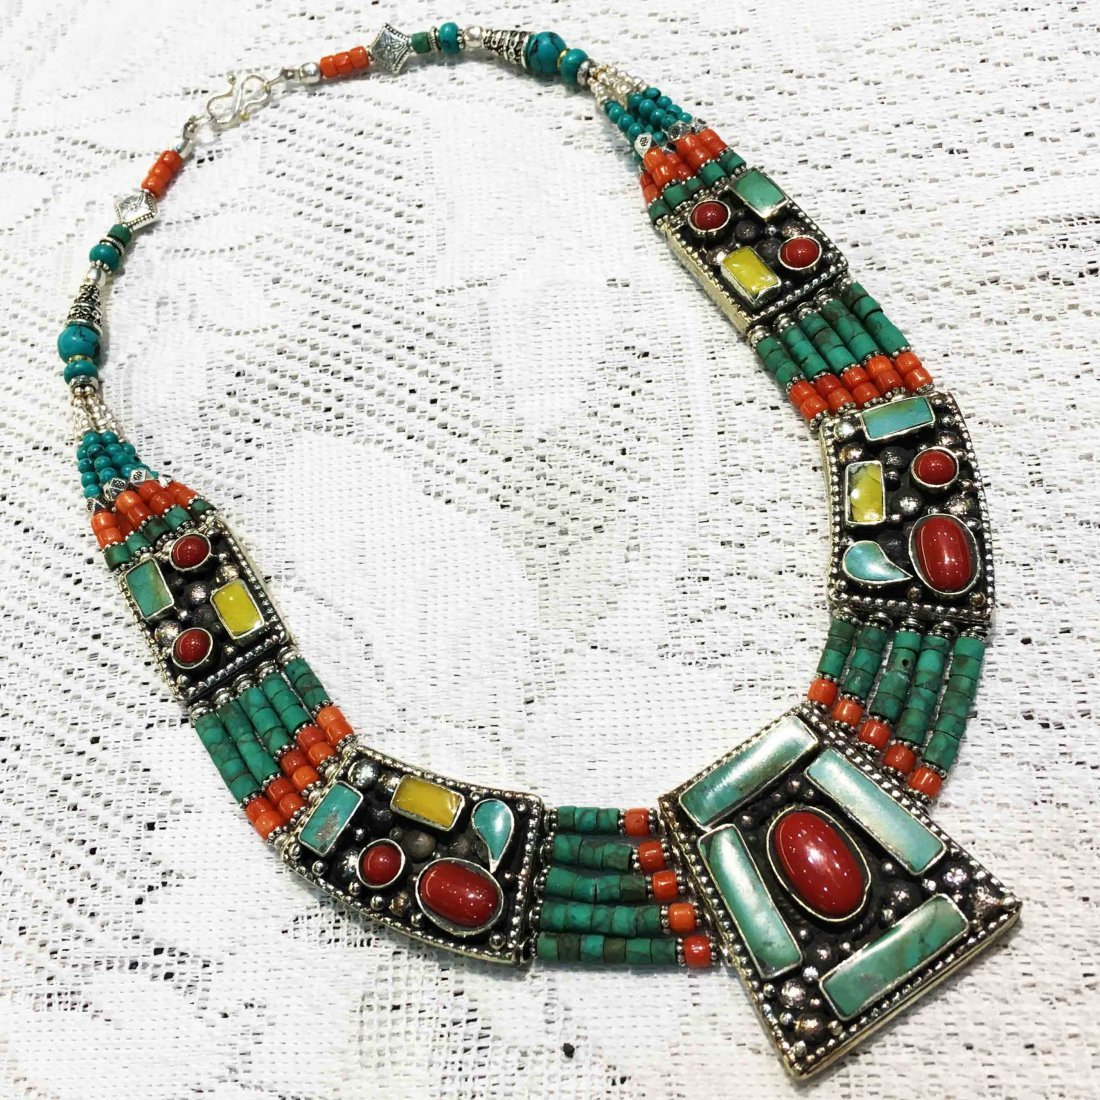 Turquoise & Coral Tibetan Handmade Necklace